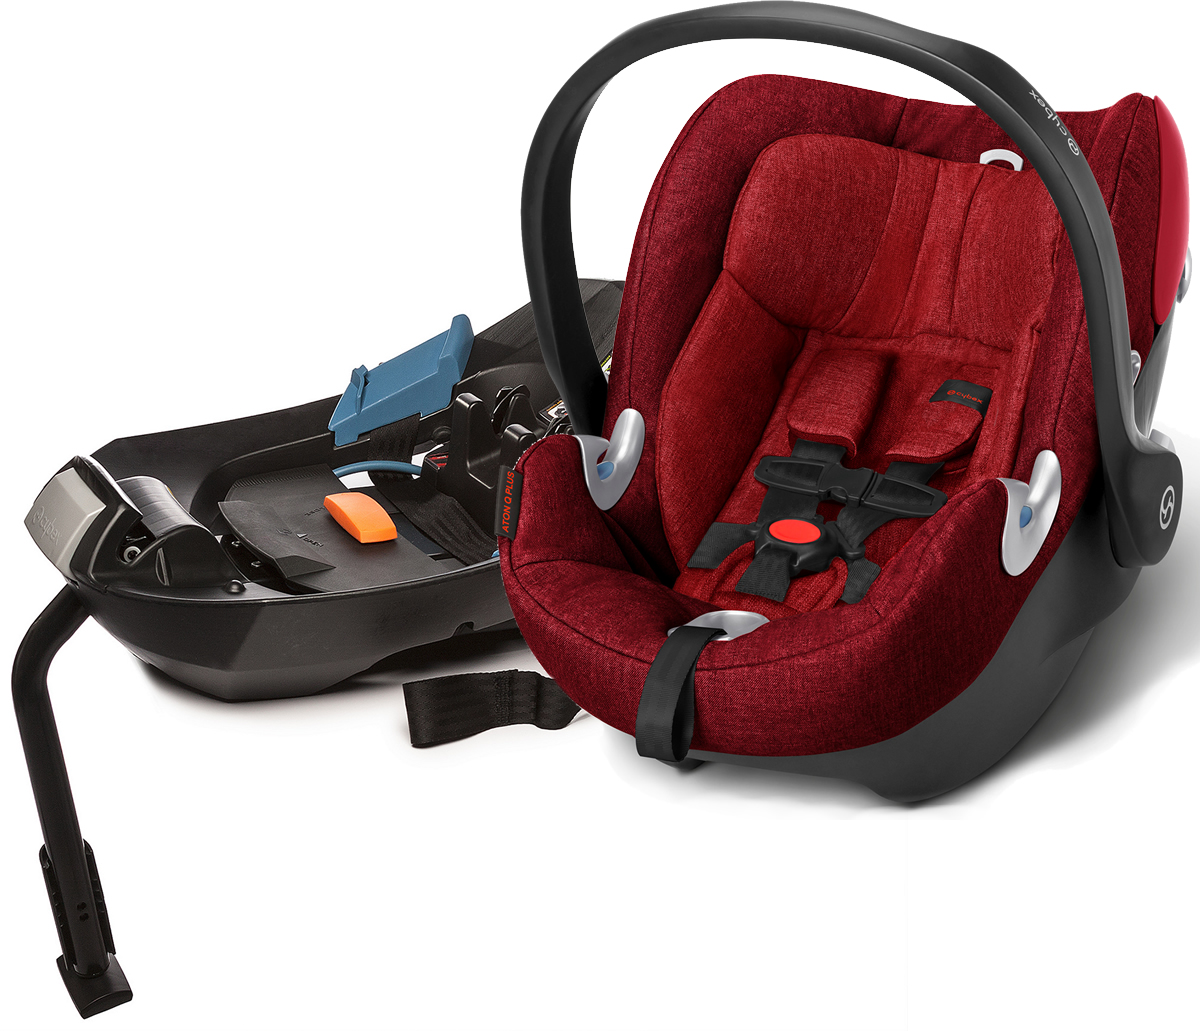 cybex aton q plus infant car seat hot spicy. Black Bedroom Furniture Sets. Home Design Ideas